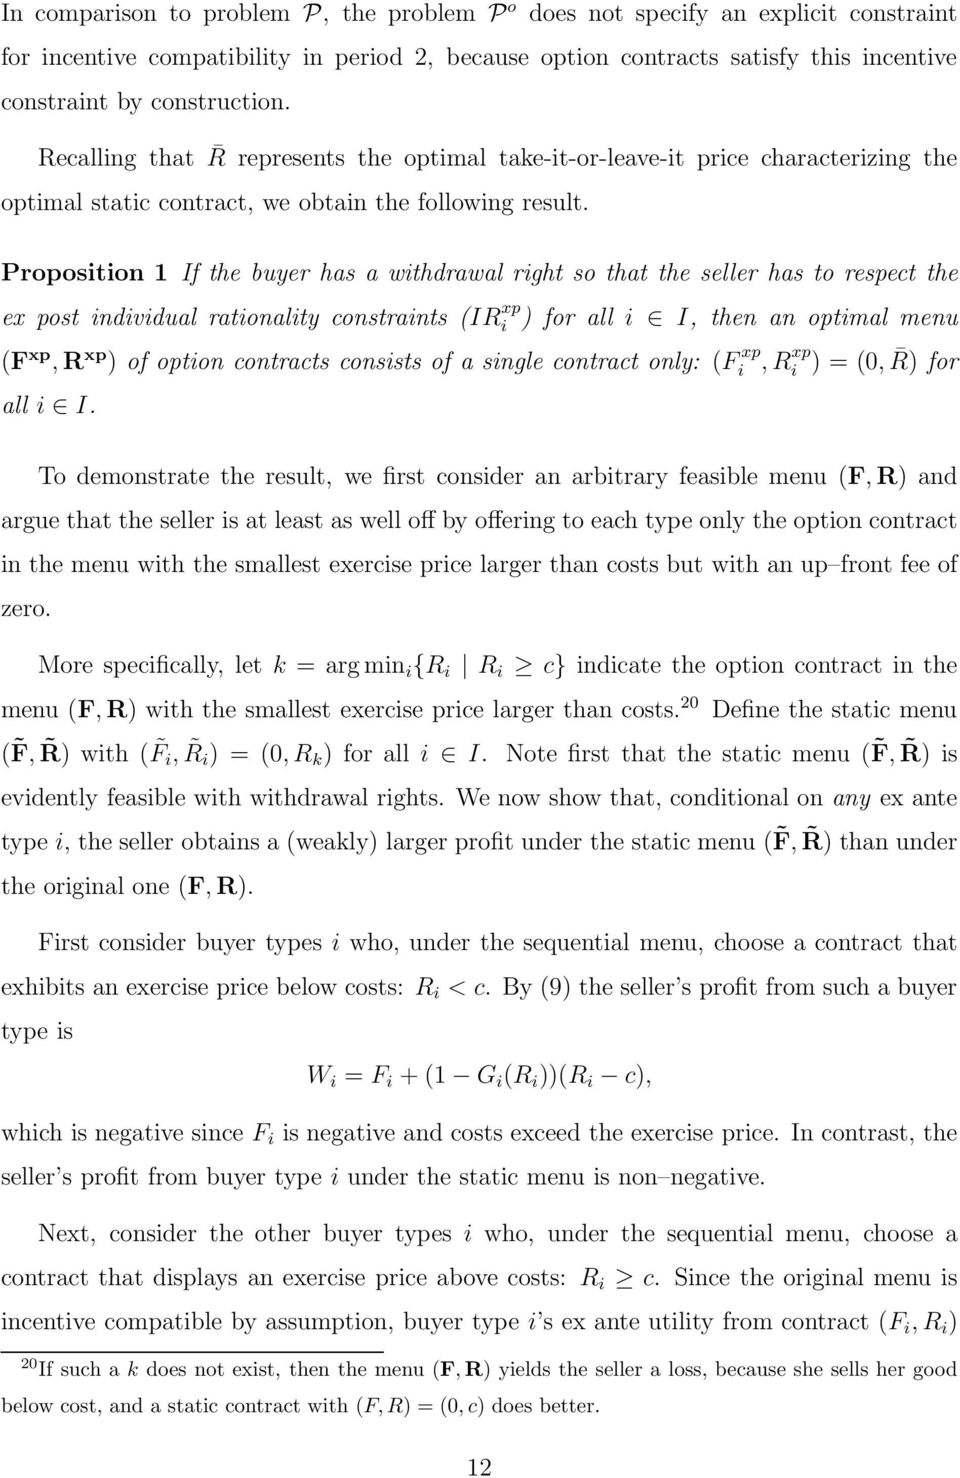 Proposition 1 If the buyer has a withdrawal right so that the seller has to respect the ex post individual rationality constraints (IR xp i ) for all i I, then an optimal menu (F xp,r xp ) of option